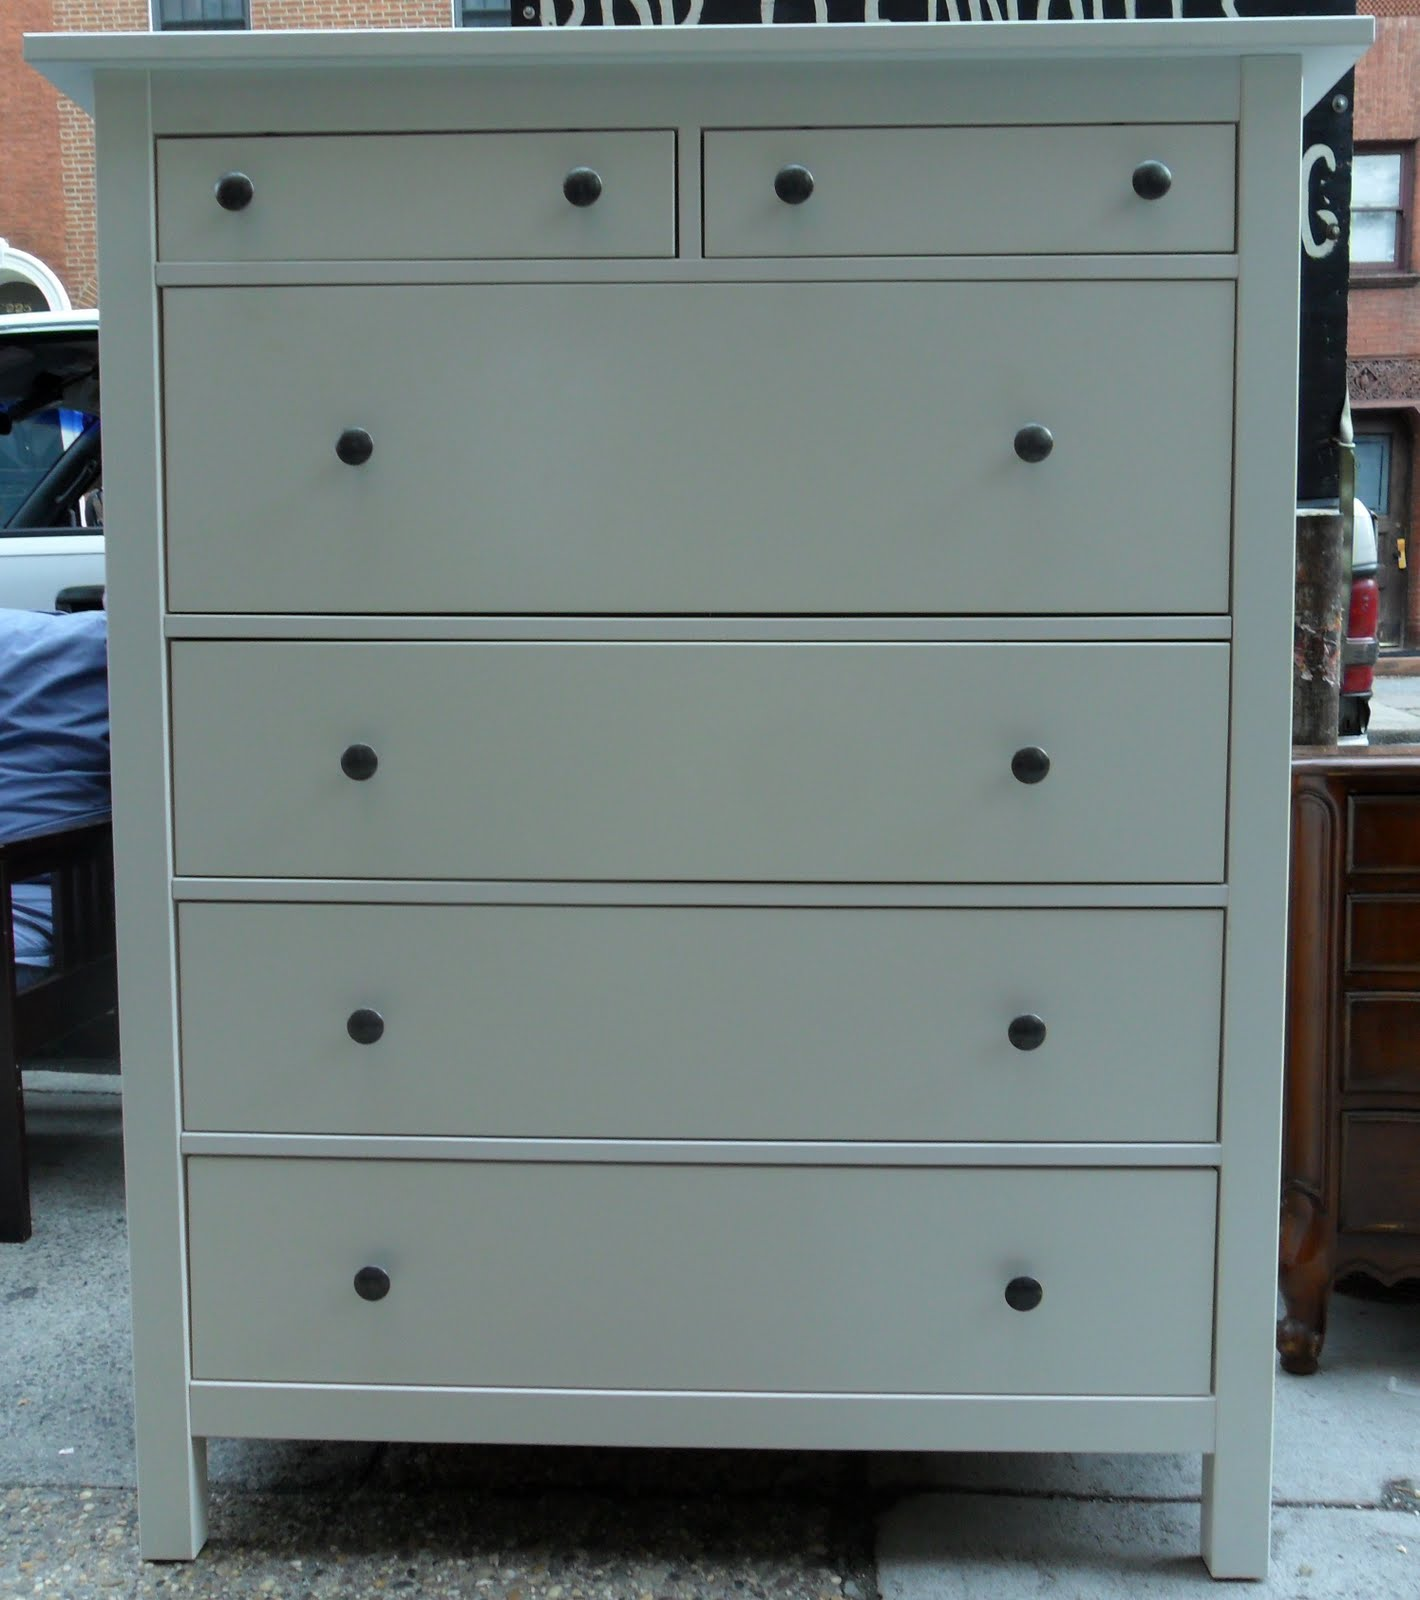 Ikea Hemnes Frisiertisch Mit Spiegel Weiß ~ Uhuru Furniture & Collectibles IKEA Hemnes Dresser SOLD